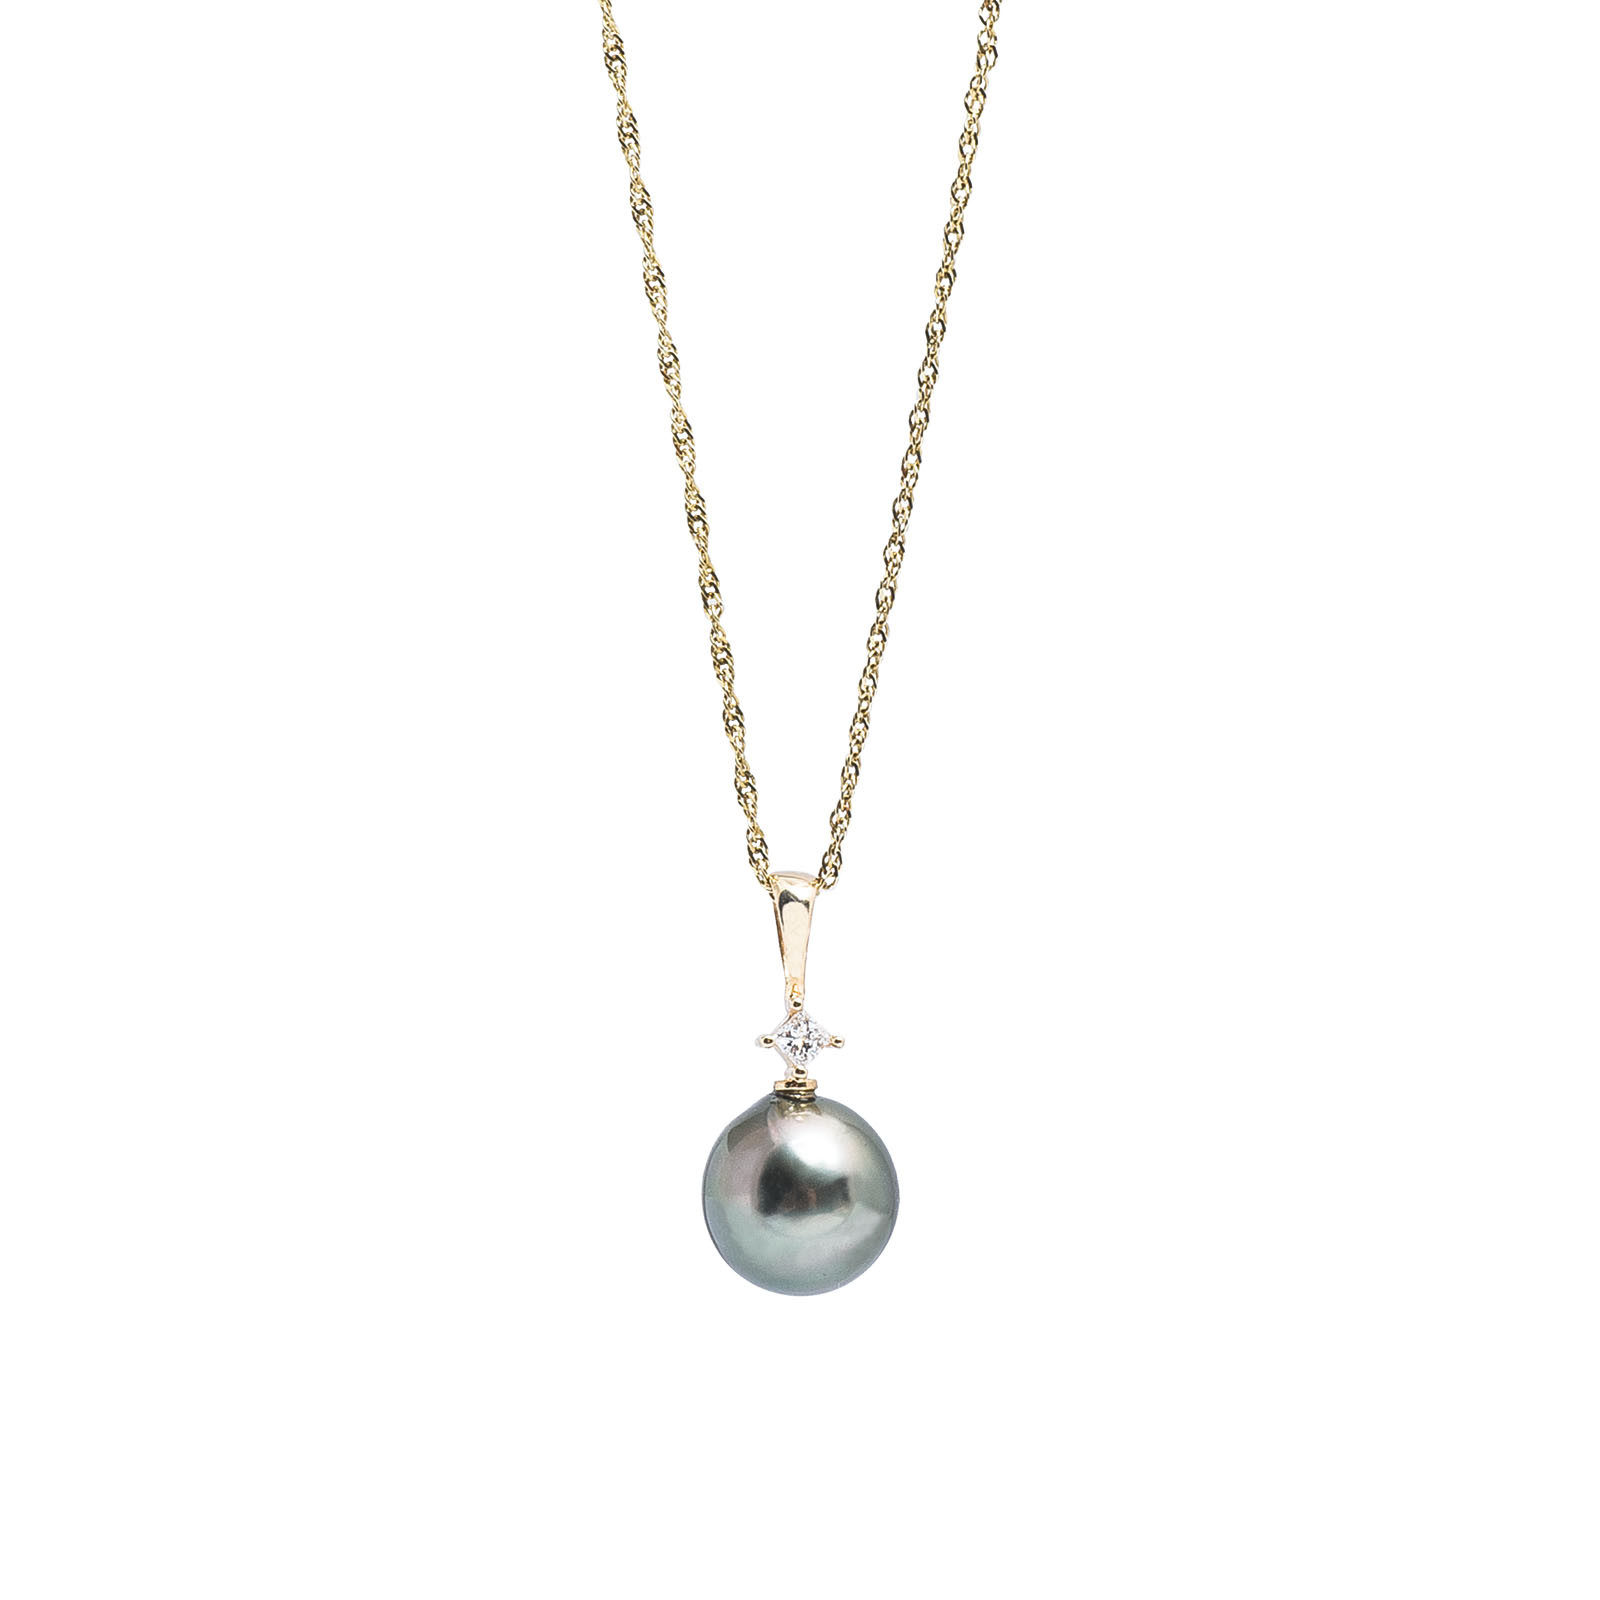 Vintage Diamond & Tahitian Pearl Necklace